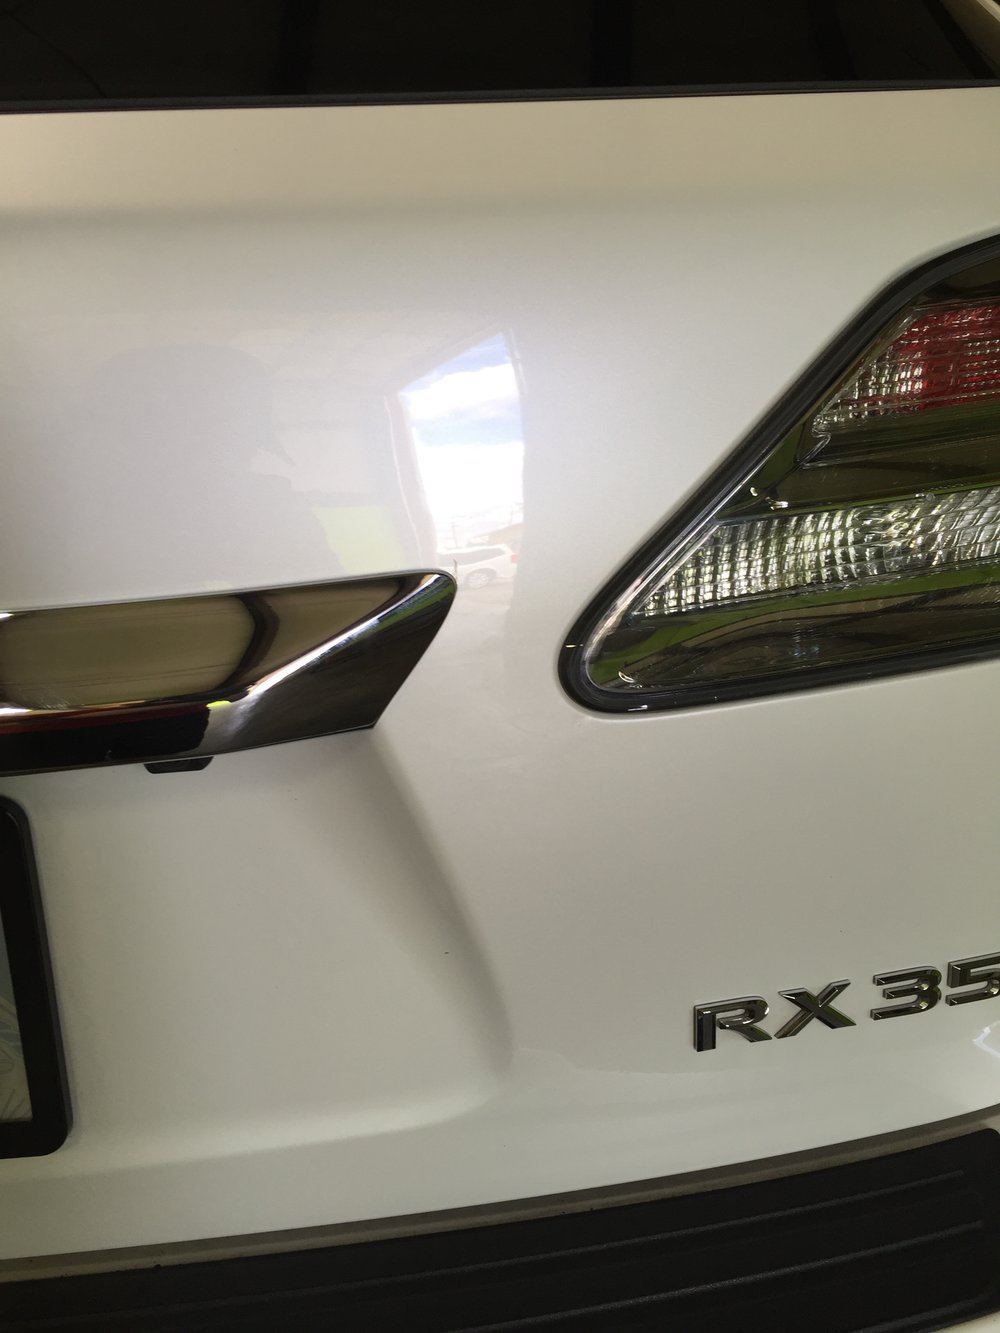 After Paintless Dent Repair - No body work, saving the factory paint!